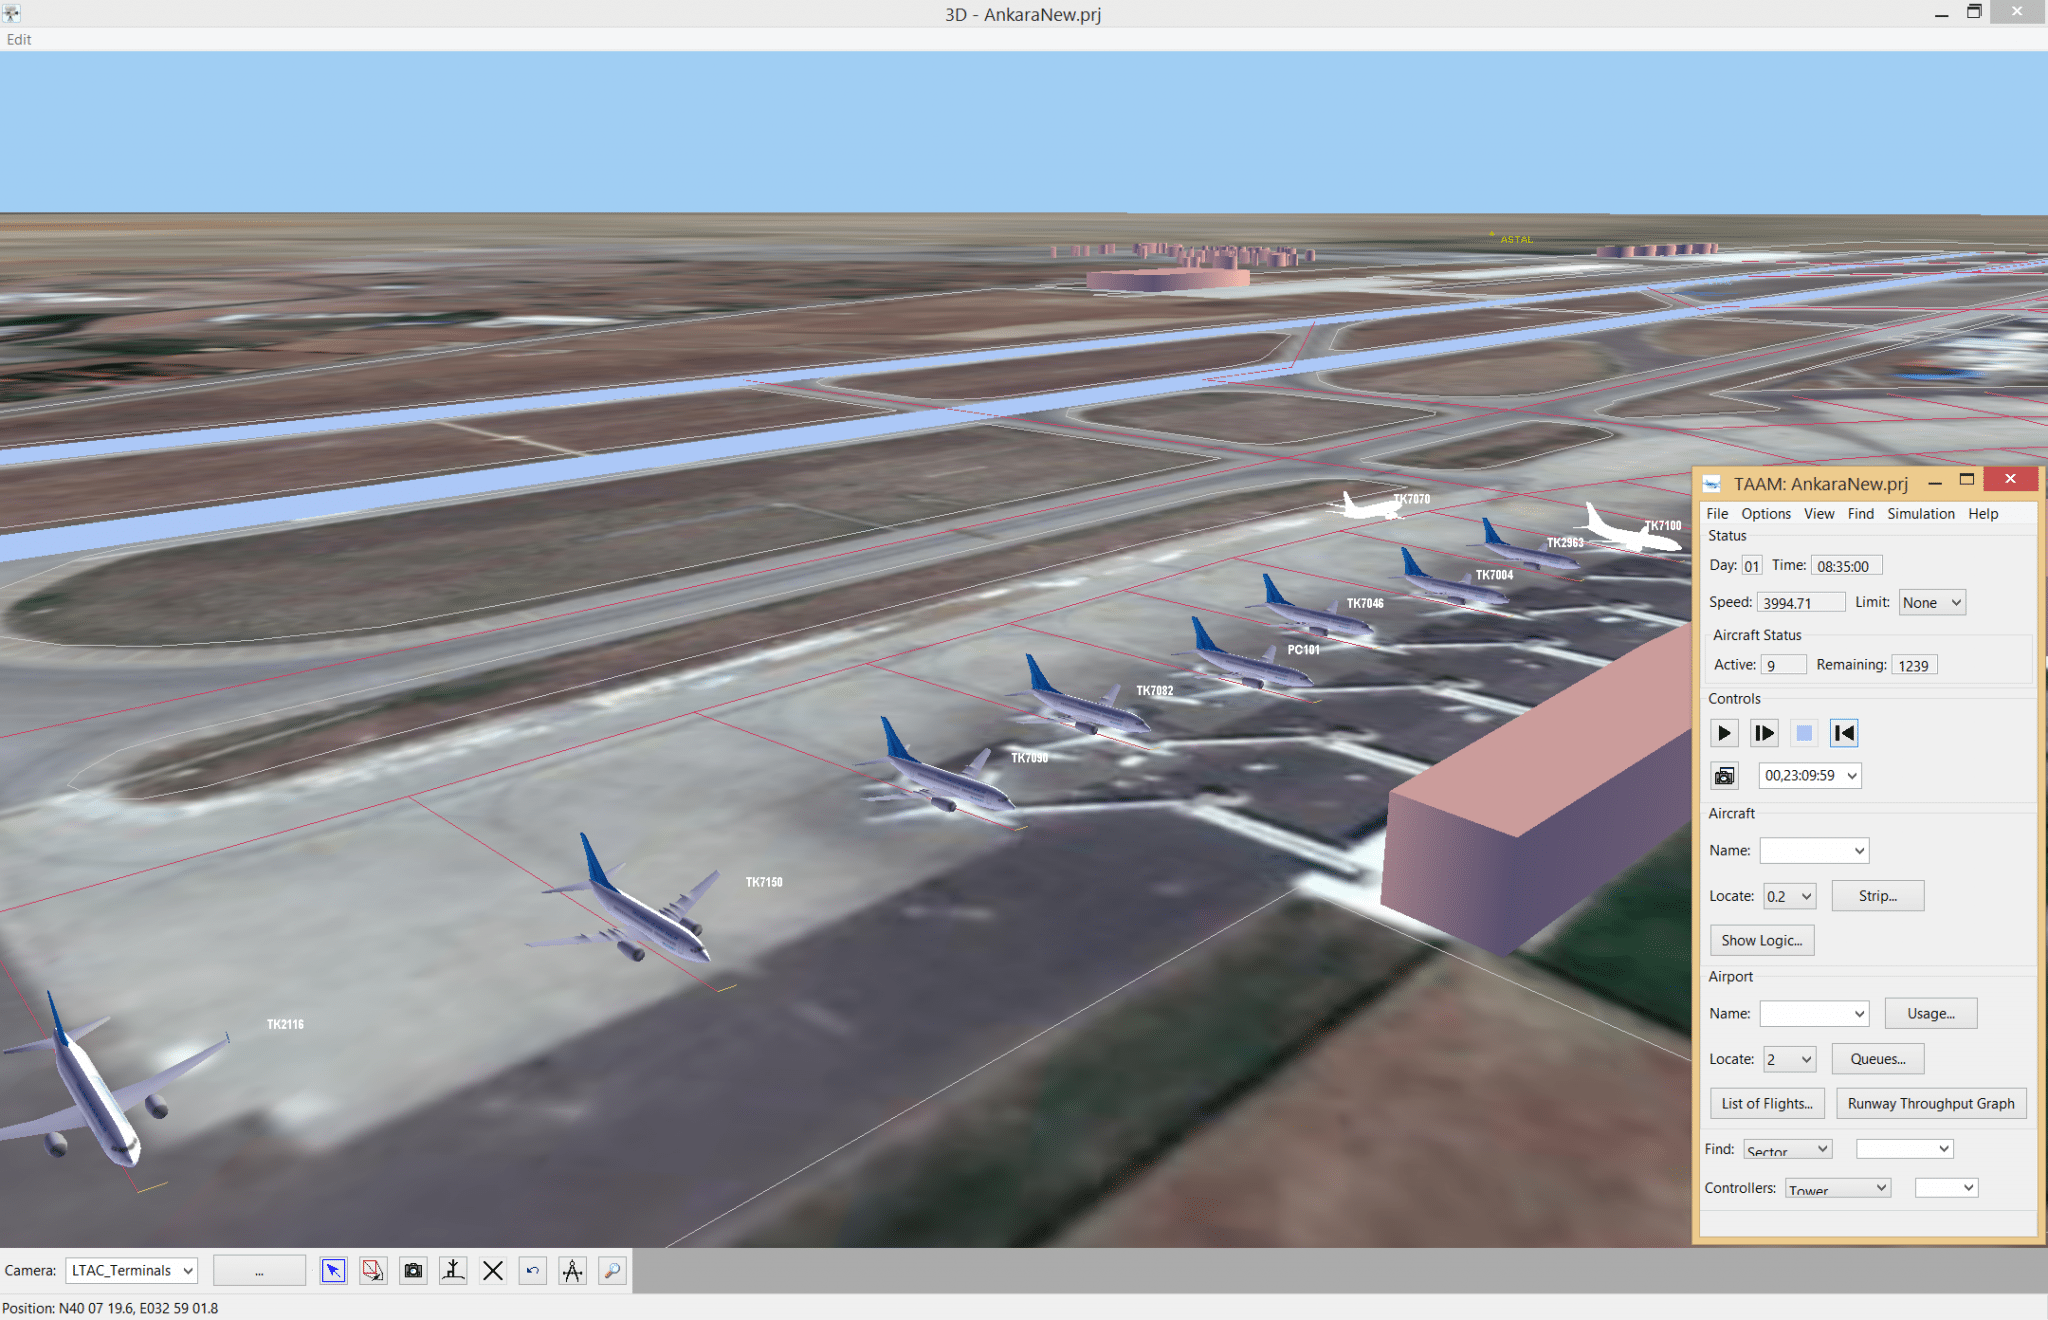 Jeppesen's TAAM airspace and airport simulation software